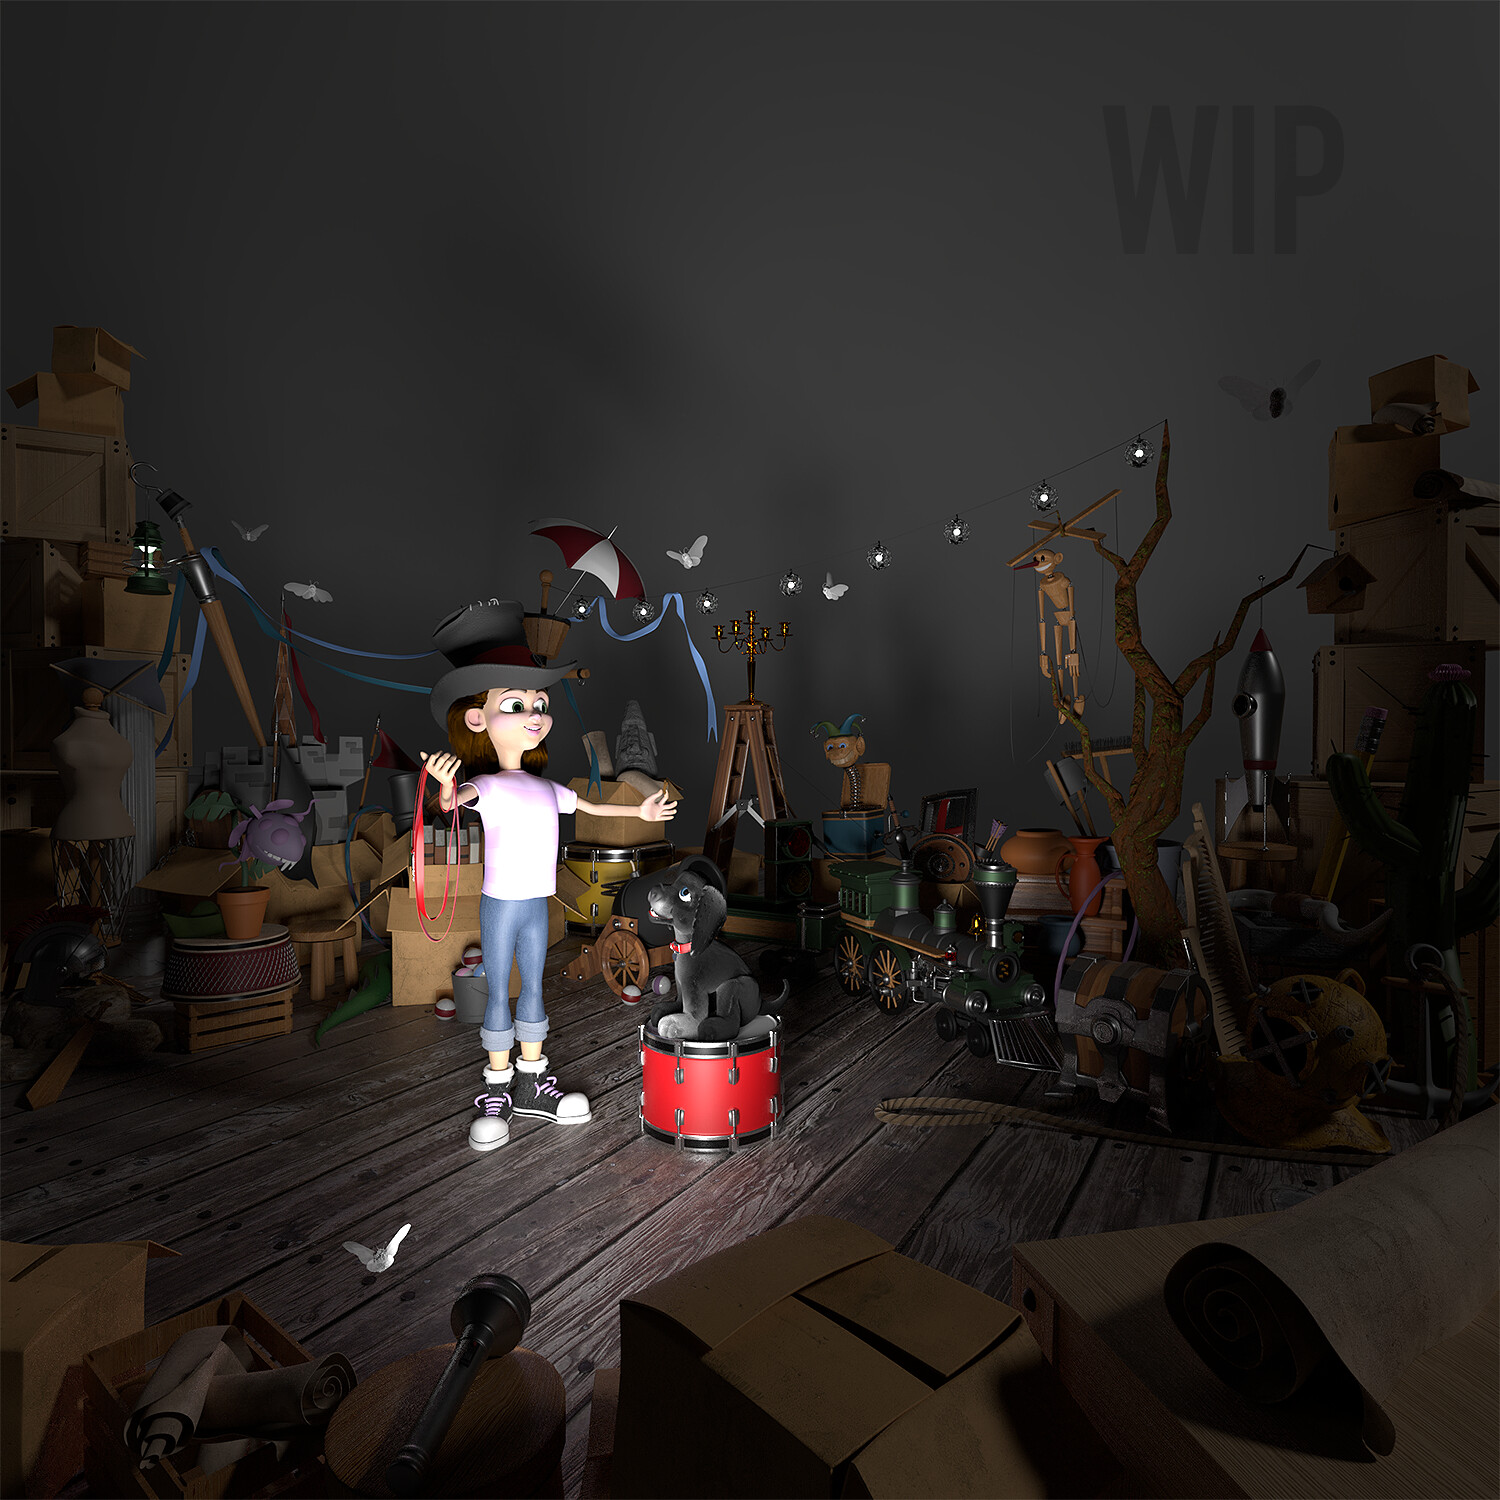 Paint & materials added to the scene and the main characters put in place